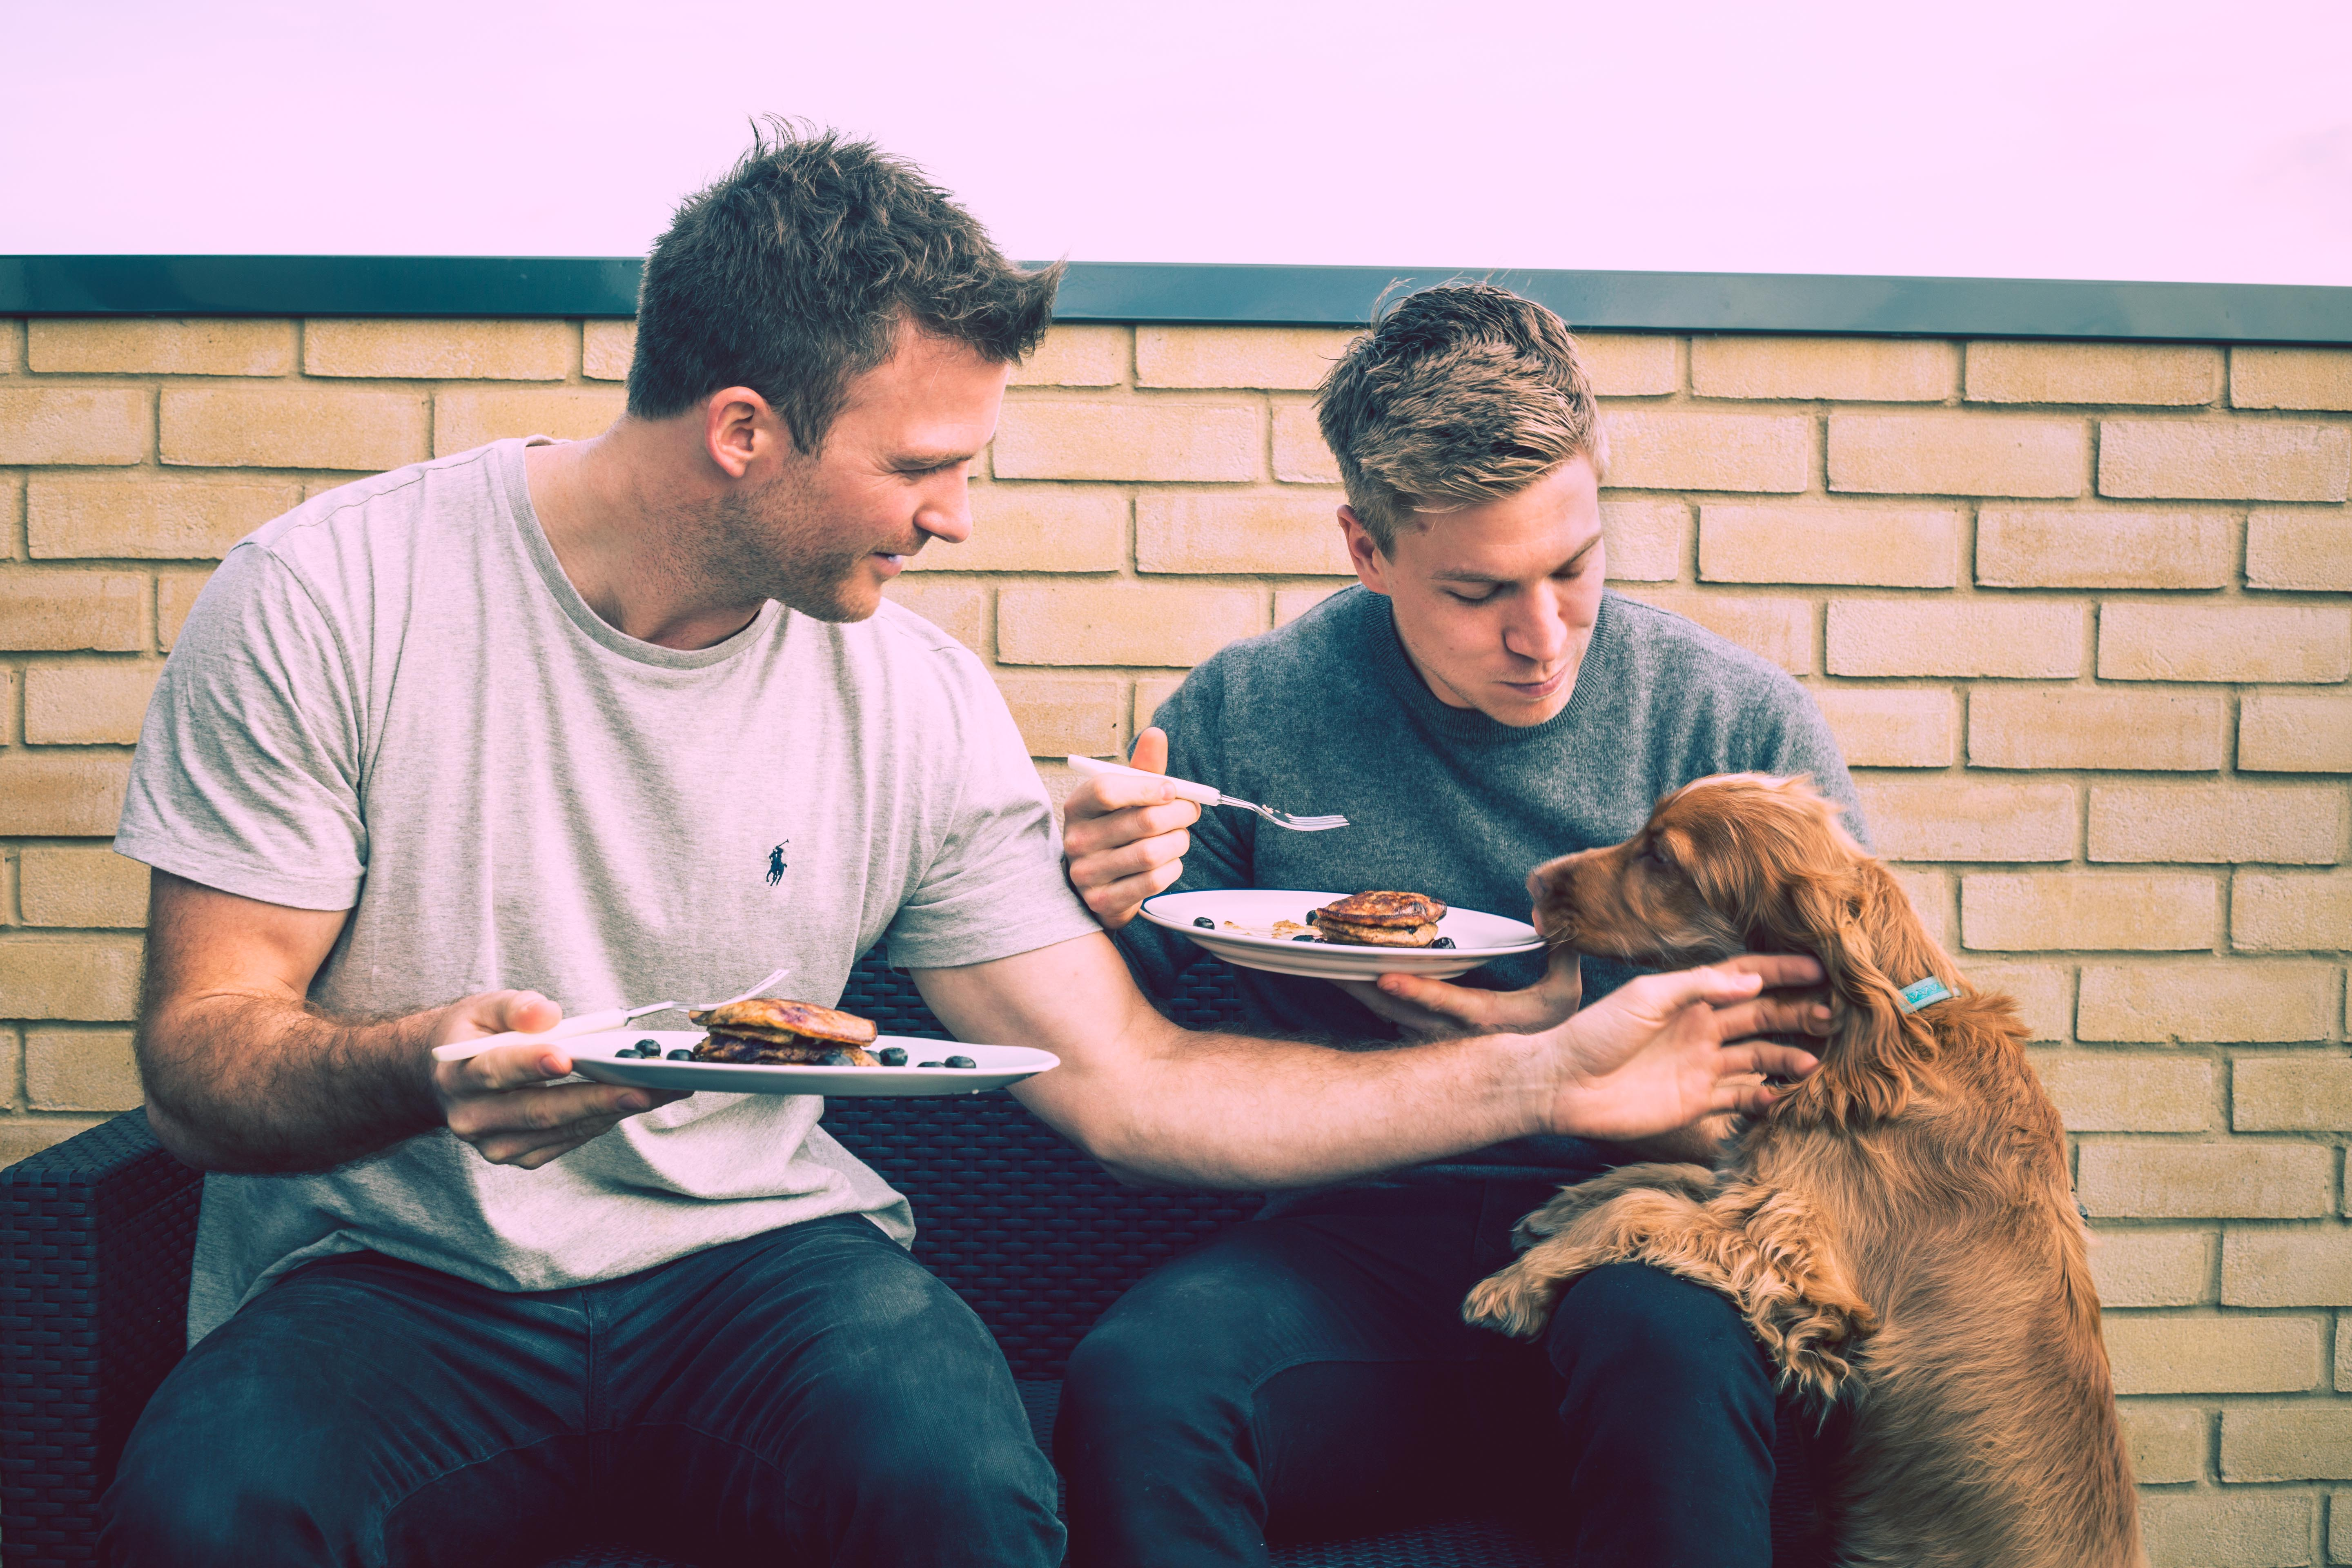 Myles and Giles eating pancakes